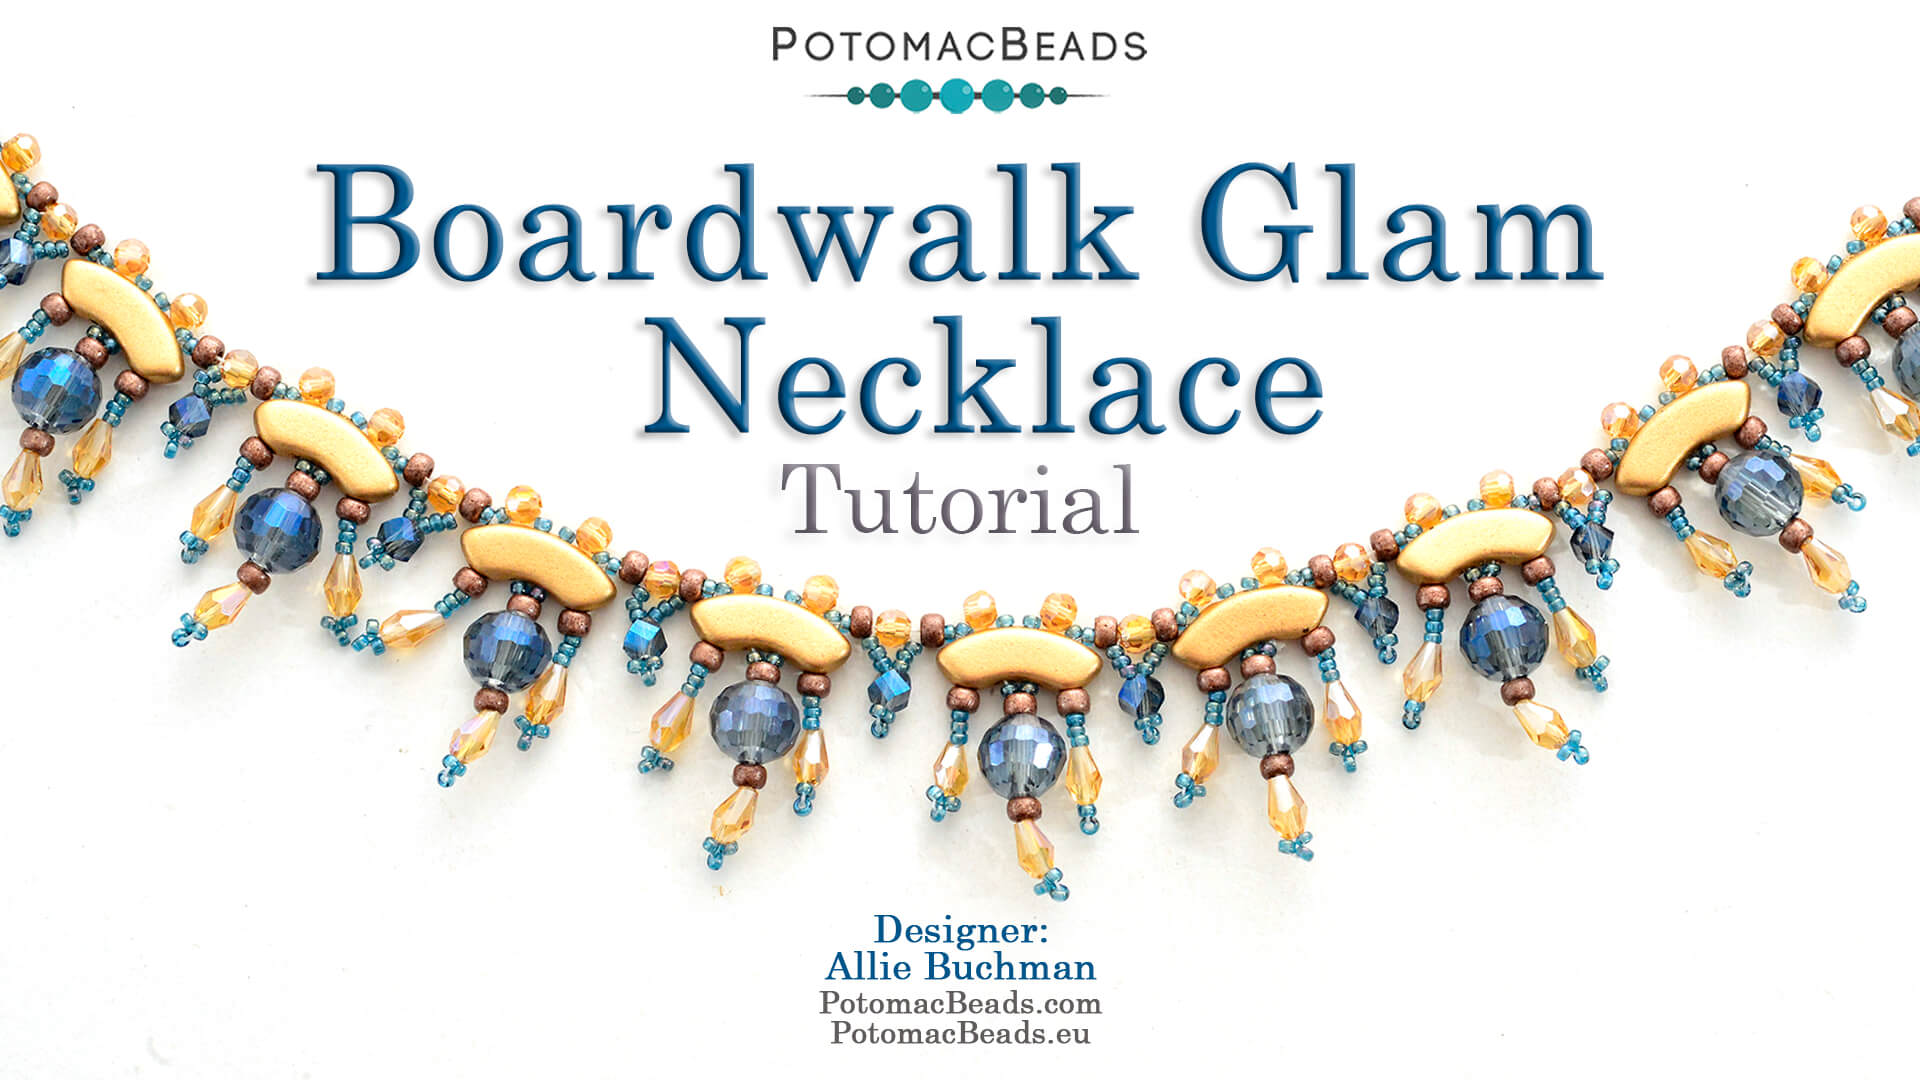 How to Bead Jewelry / Videos Sorted by Beads / QuadBow & PieDuo Bead Videos / Boardwalk Glam Necklace Tutorial